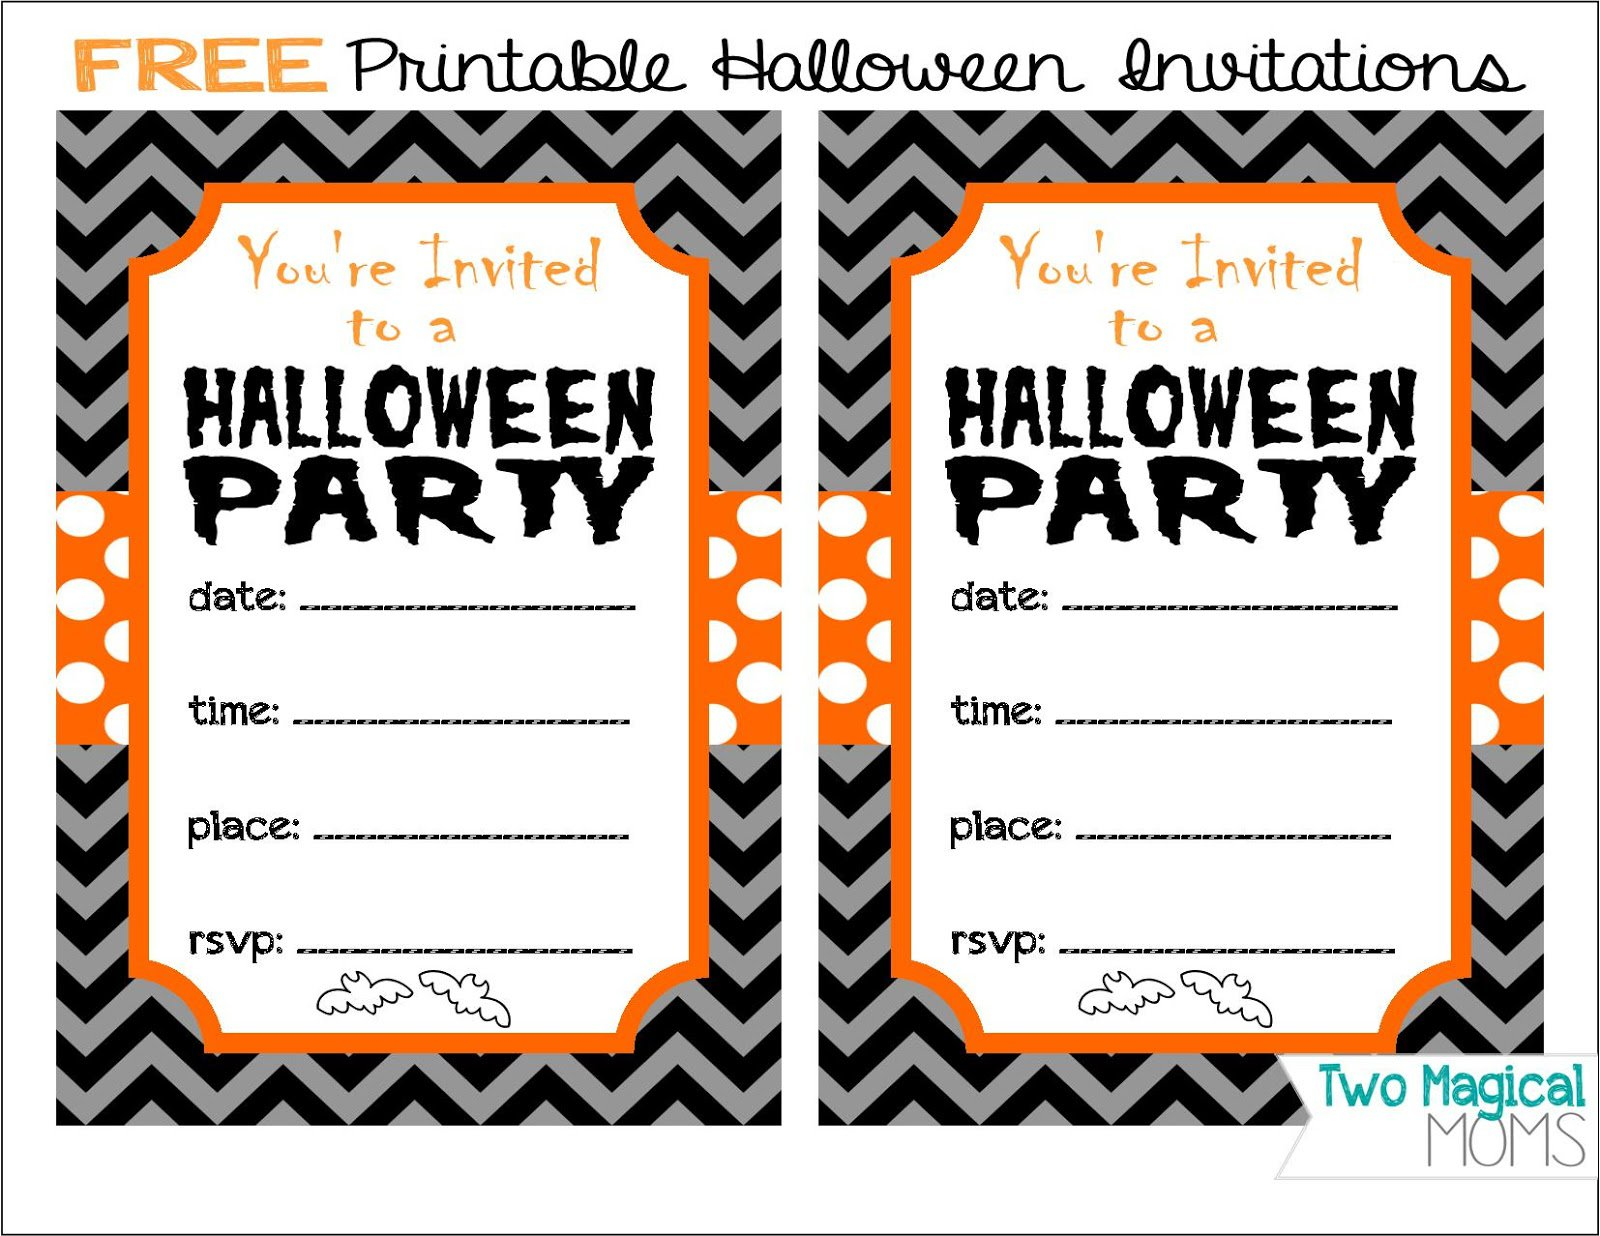 Print Out Halloween Invitation